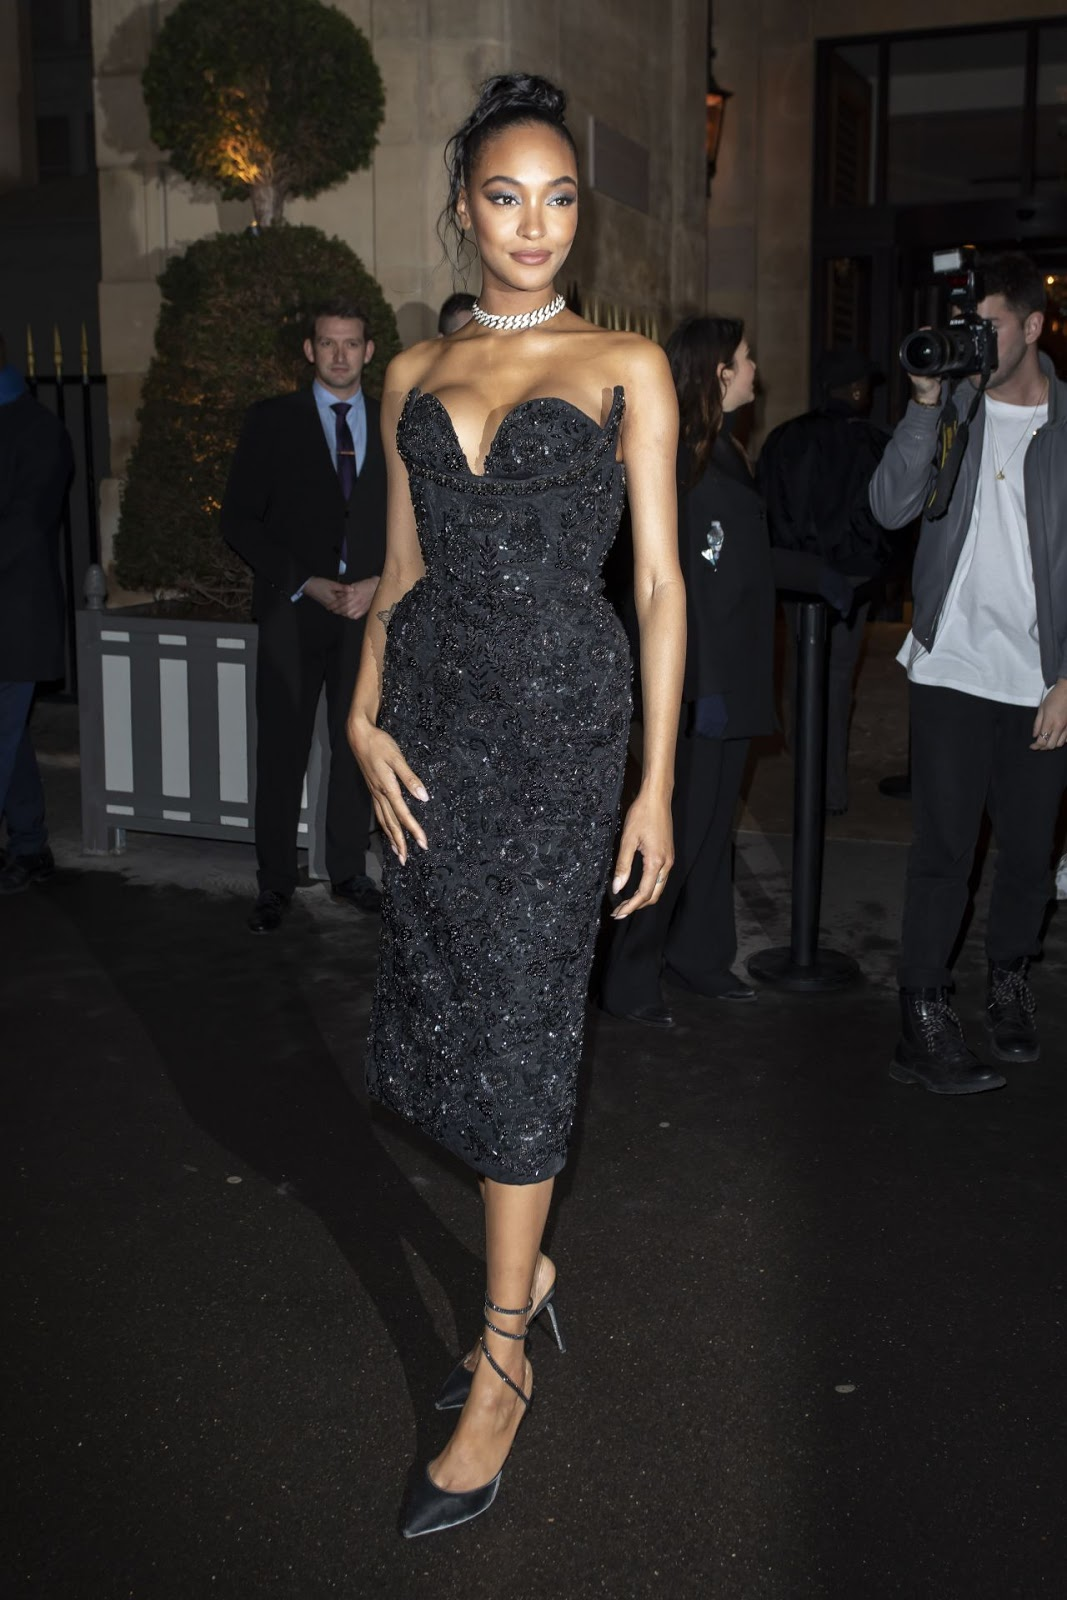 Jourdan Dunn is busty in sequinned corset dress at the CR Fashion Book x Redemption Party in Paris